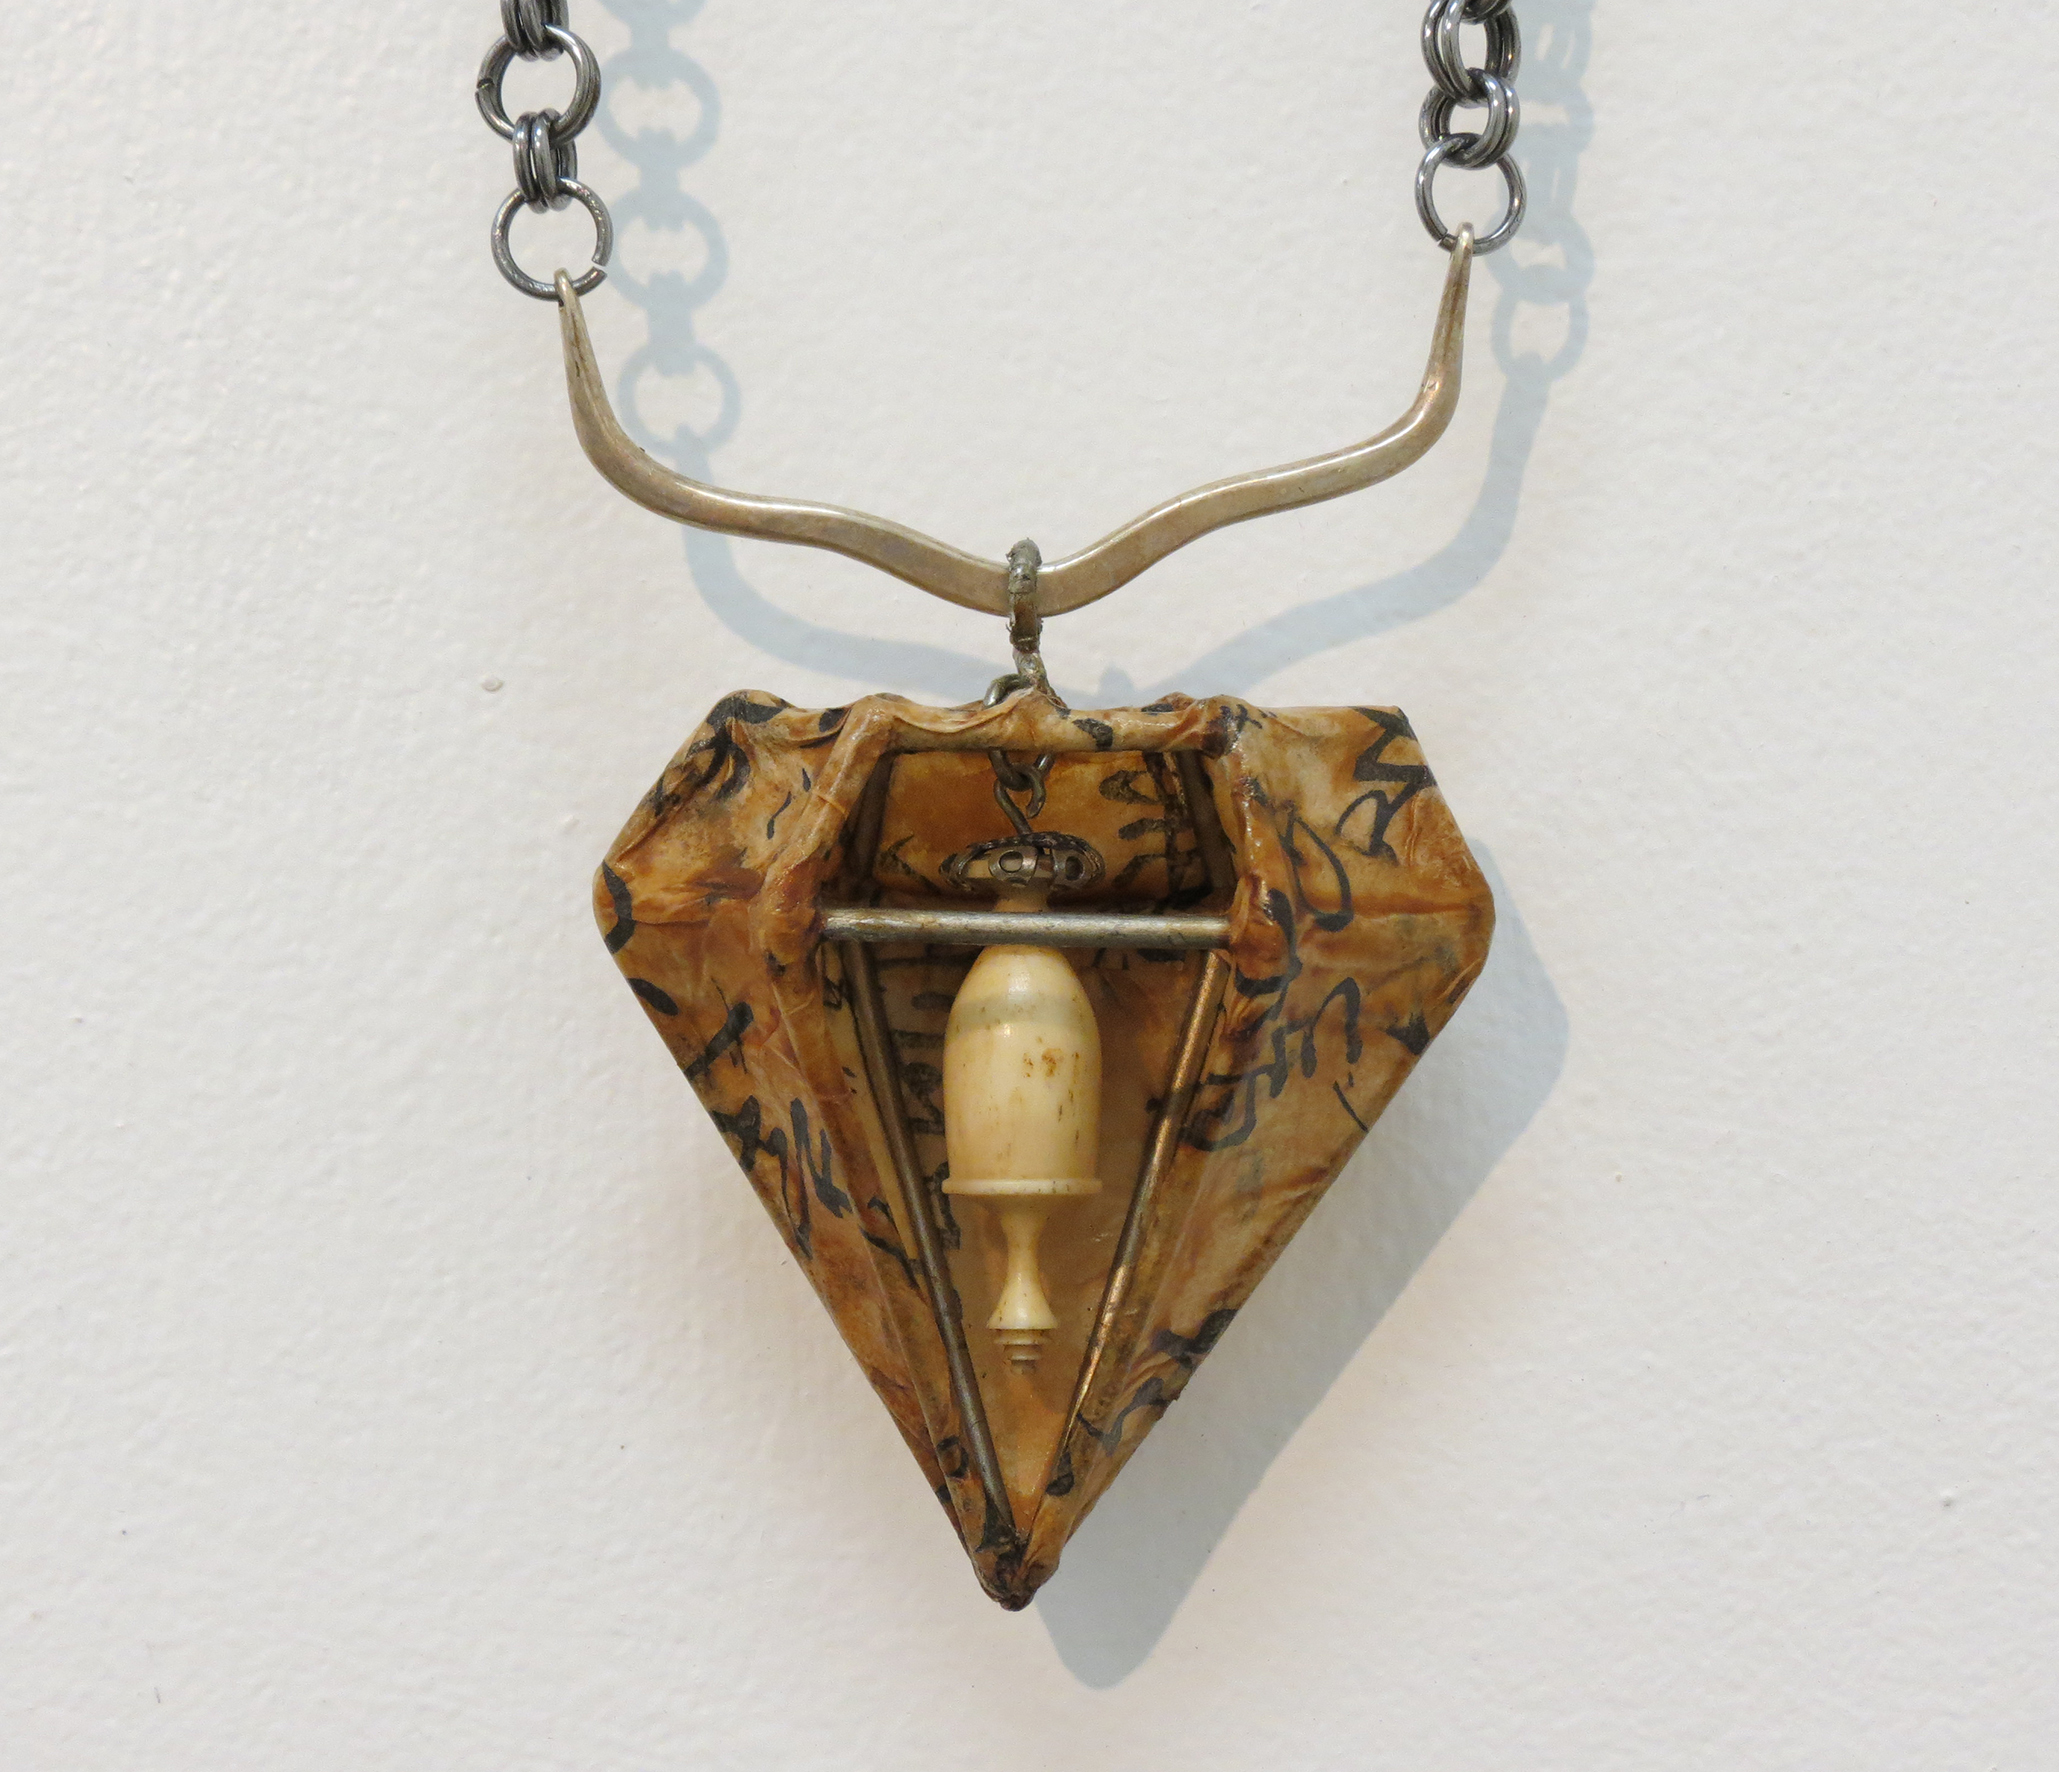 8. Kathy Aspinall, 'Ivory', 2017, steel, silver, antique Japanese paper, antique ivory, necklace, $300.jpg